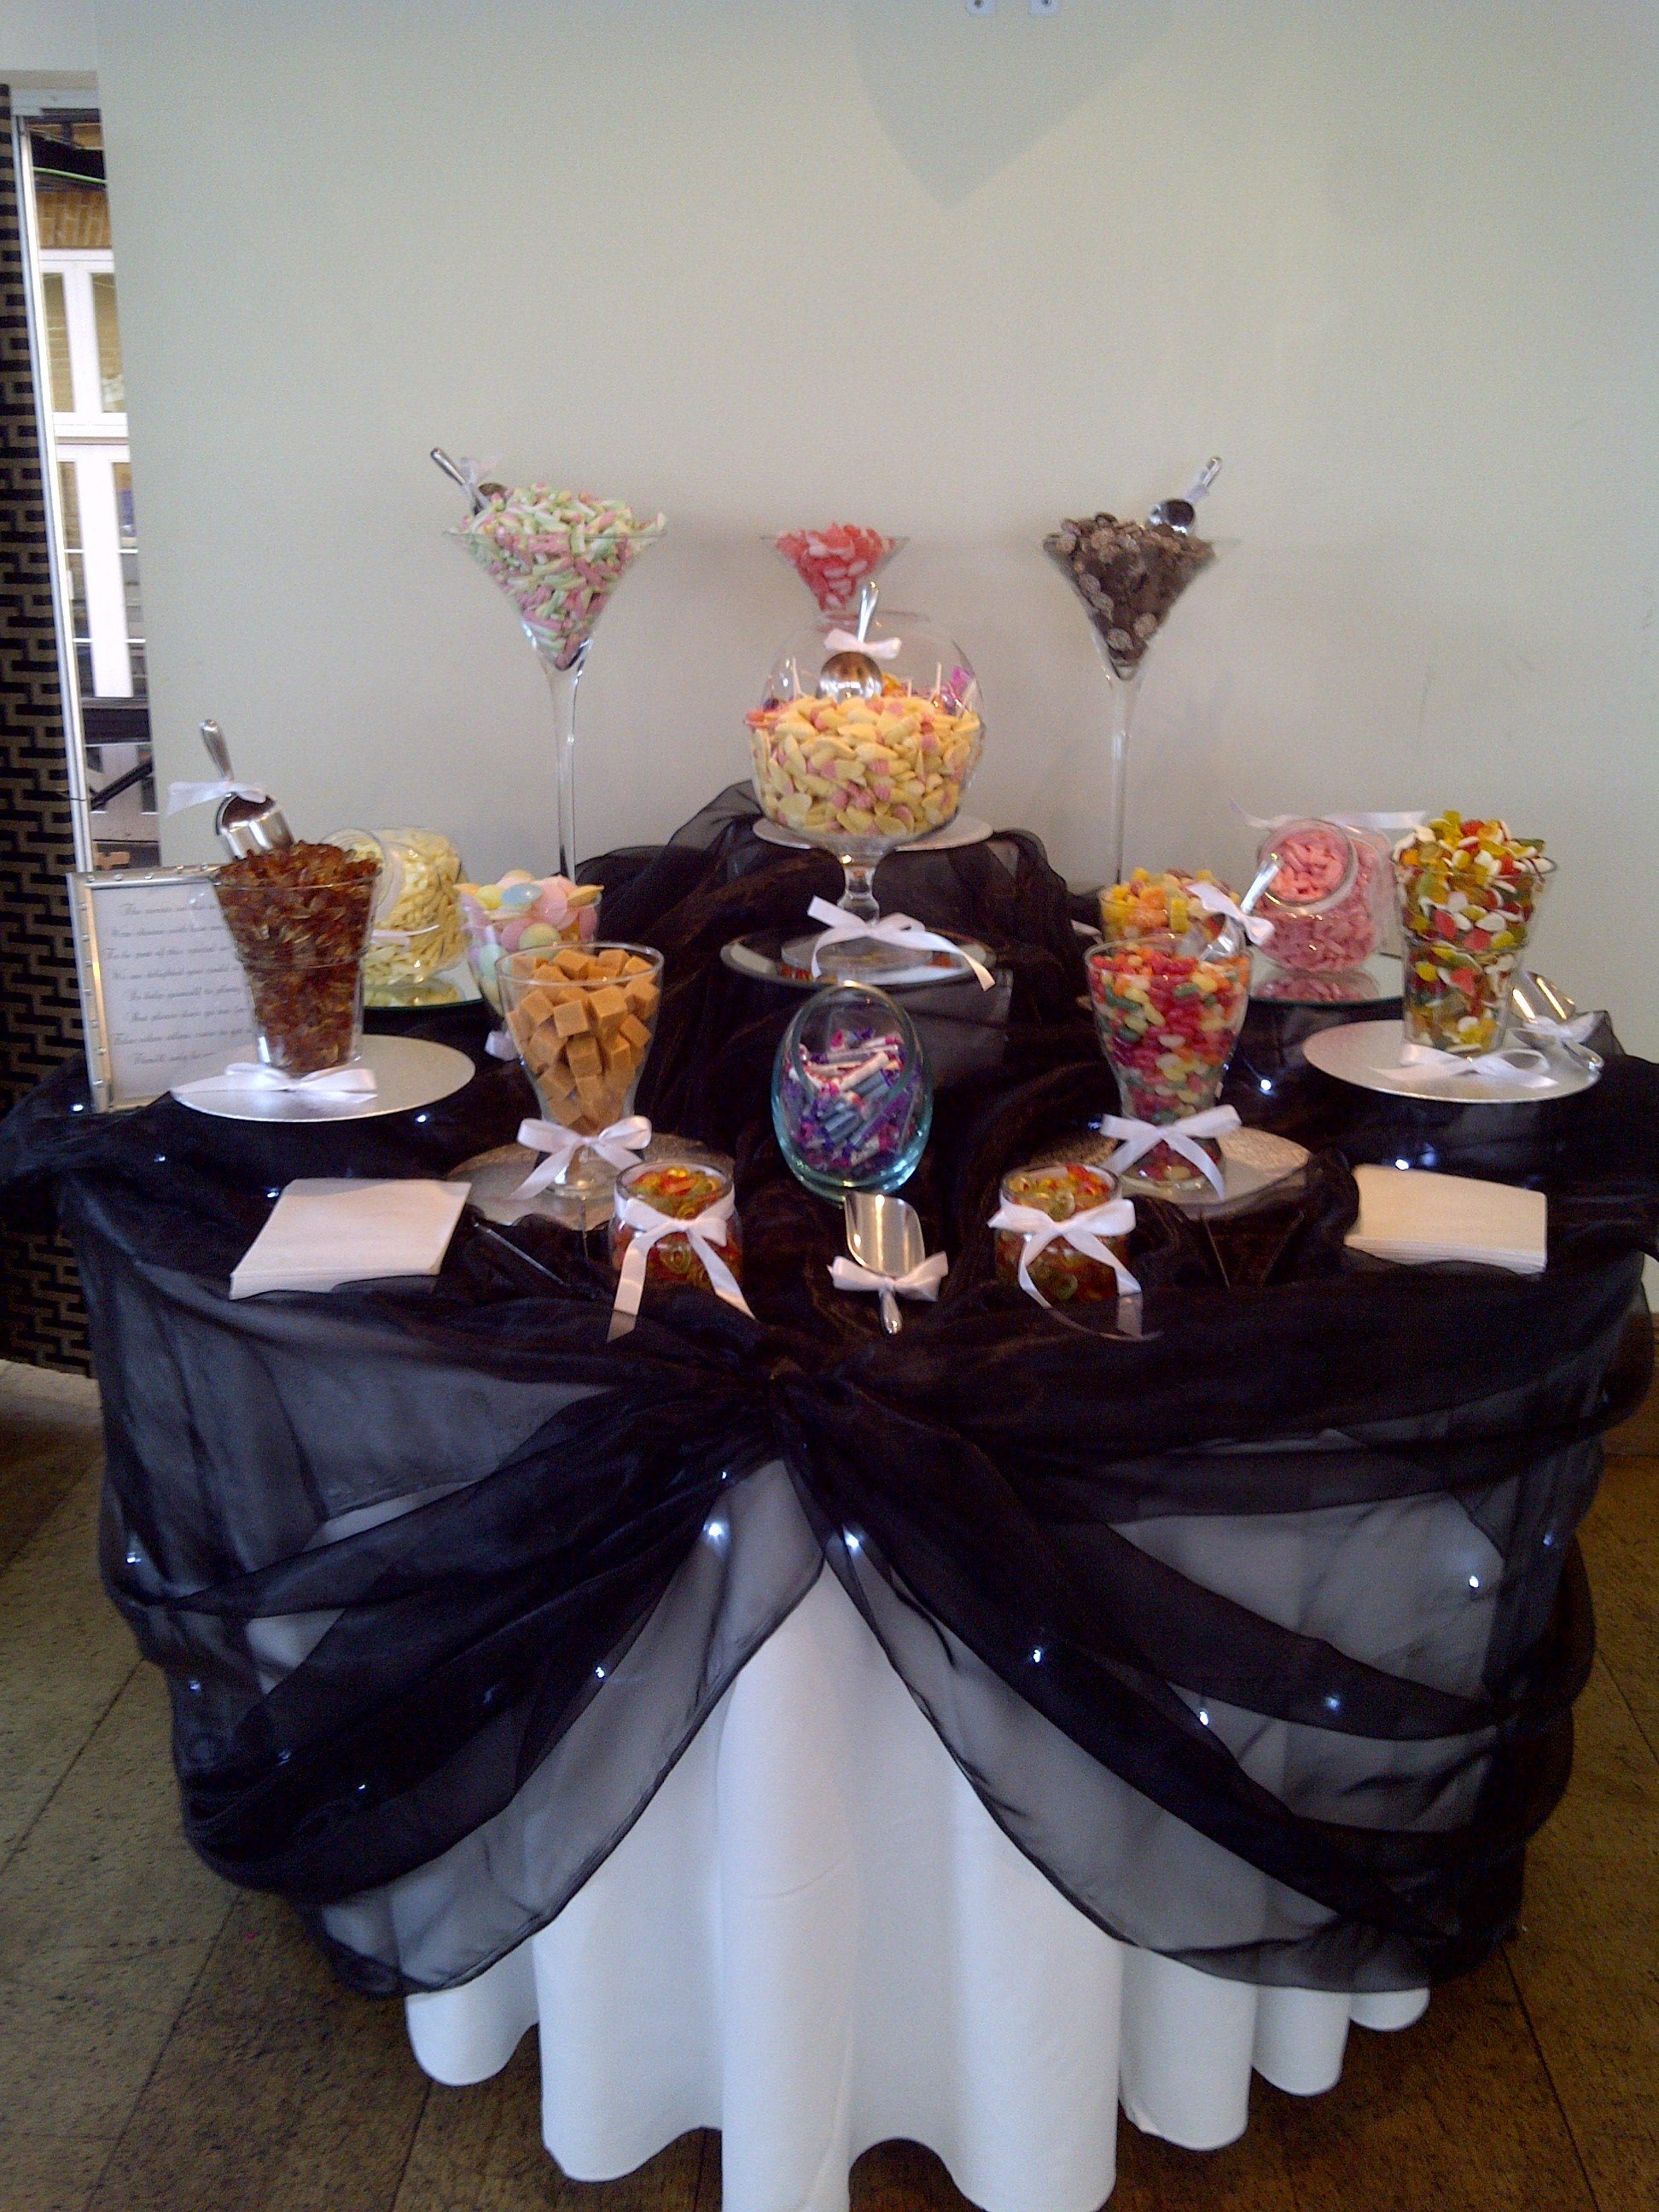 Sweetie Table at Orsett Hall